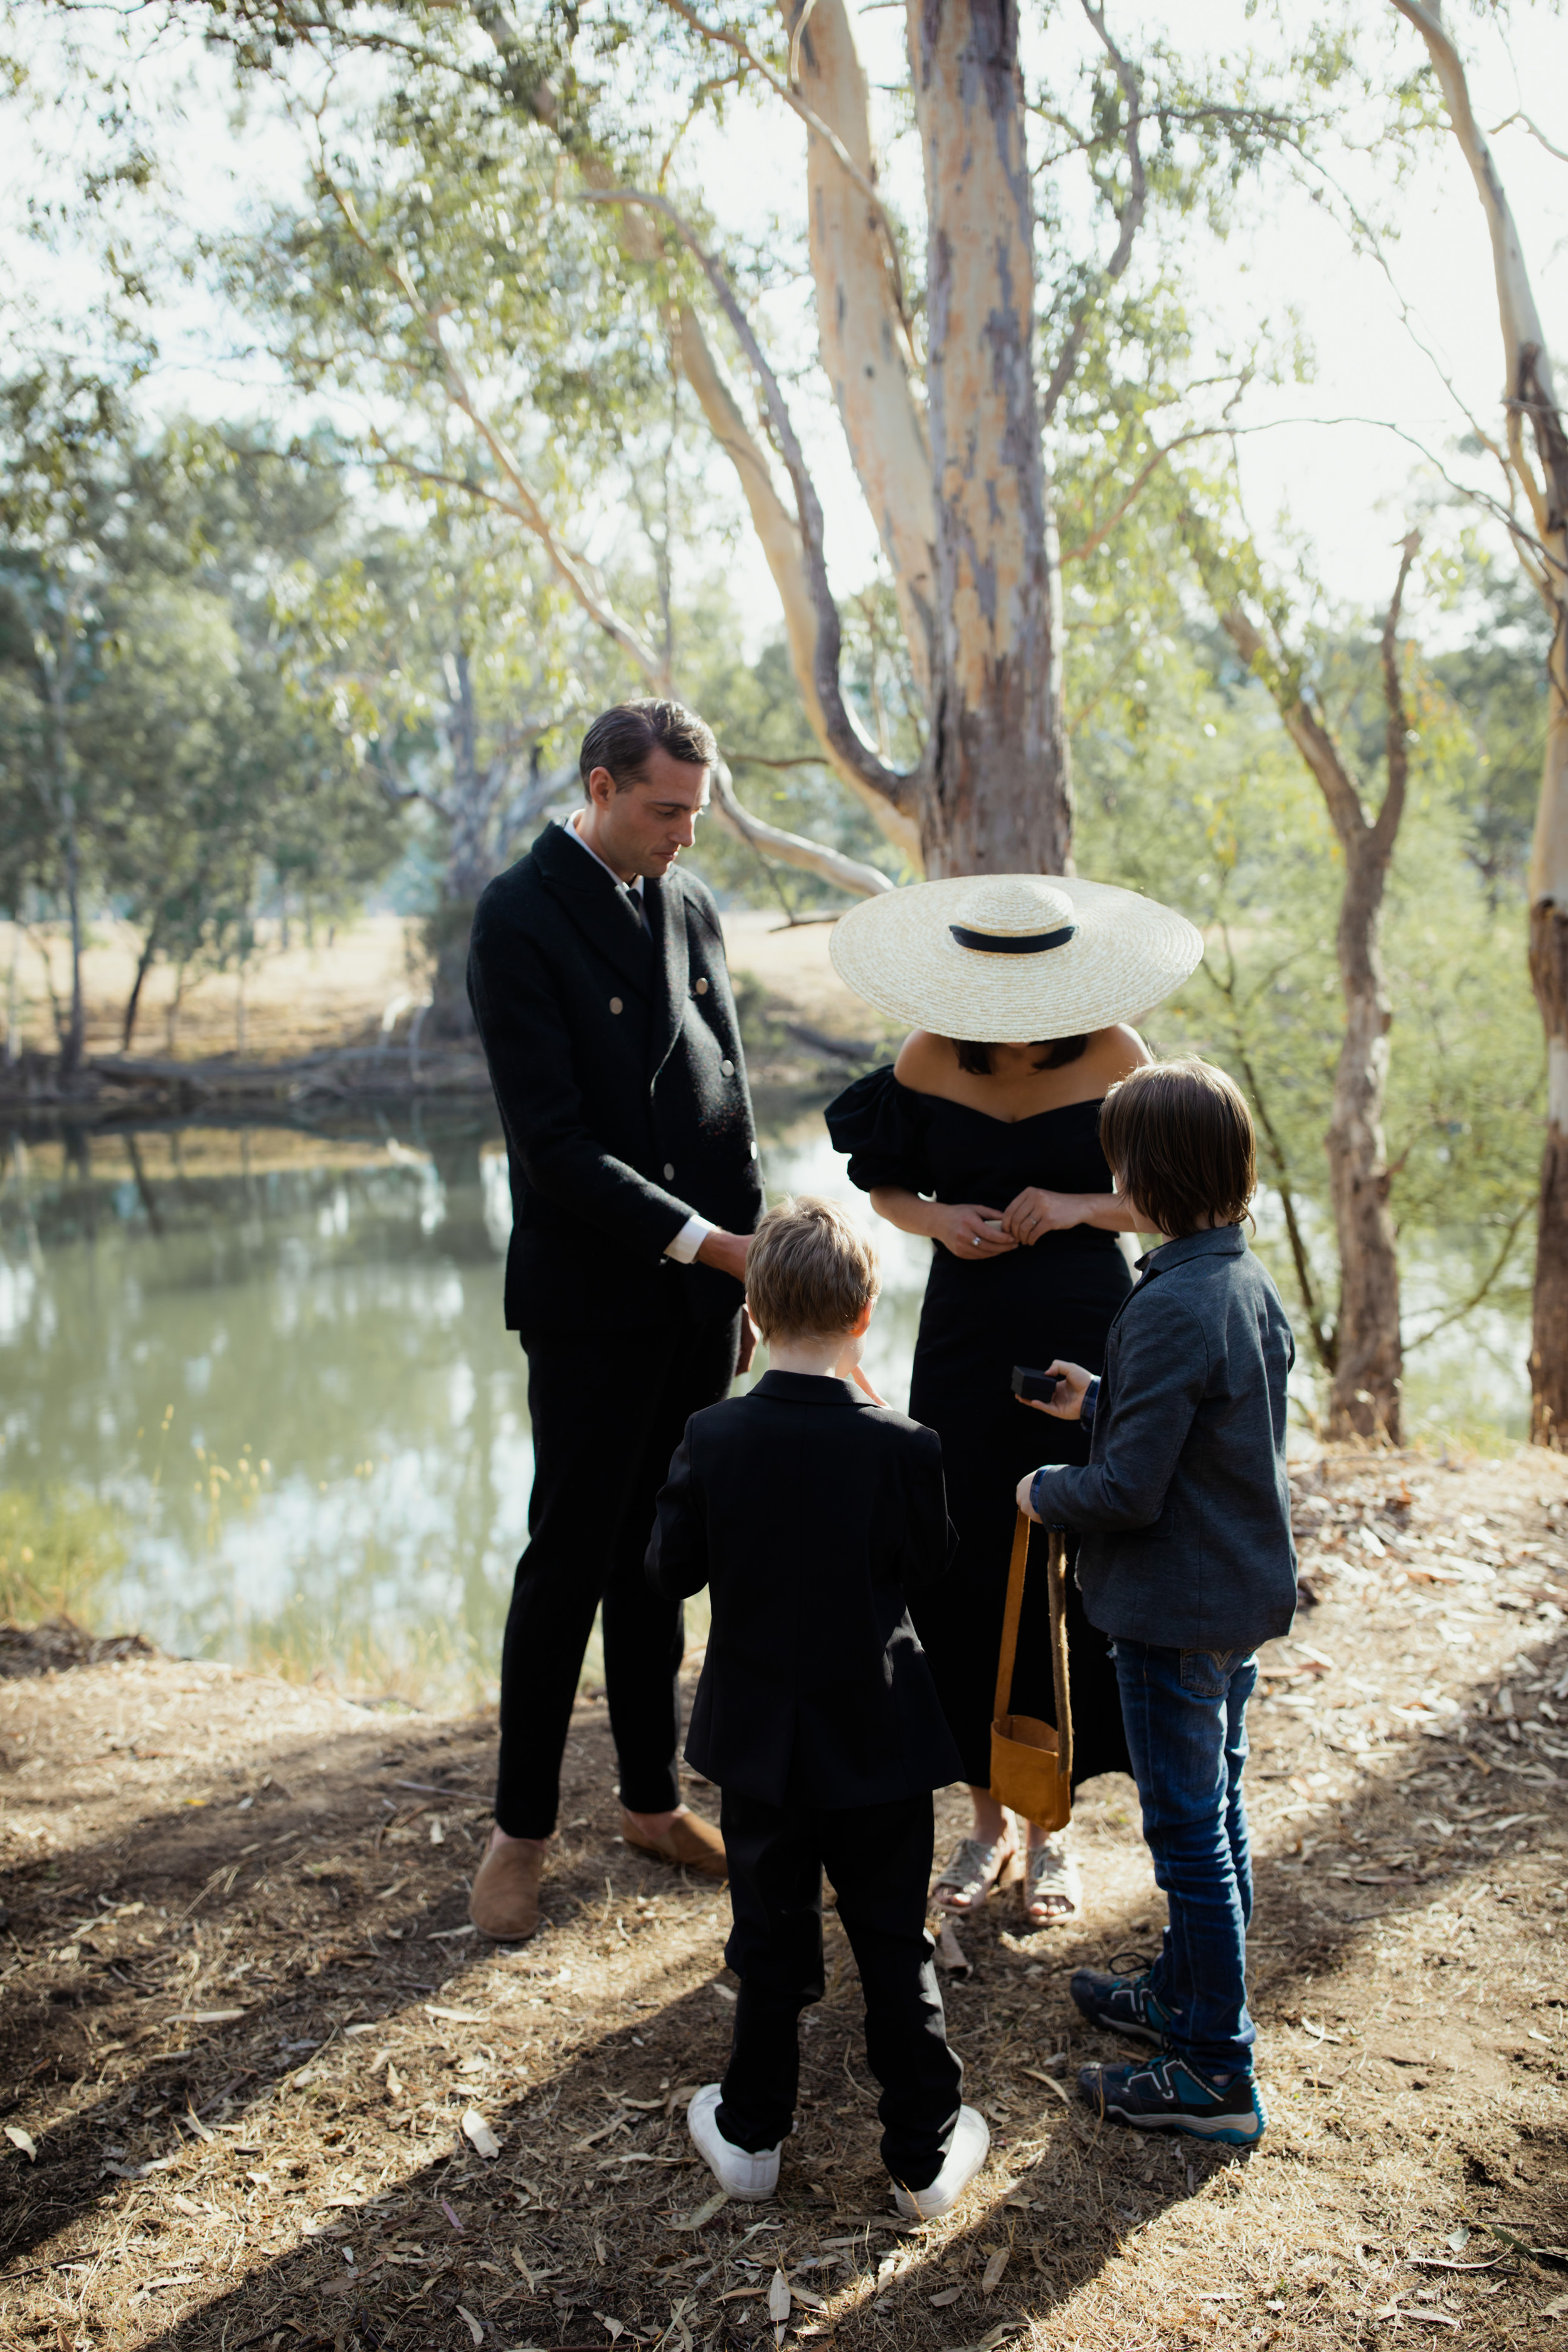 I-Got-You-Babe-Weddings-Claire-Dave-Trawol-VIC-Country-Property-Wedding120.JPG